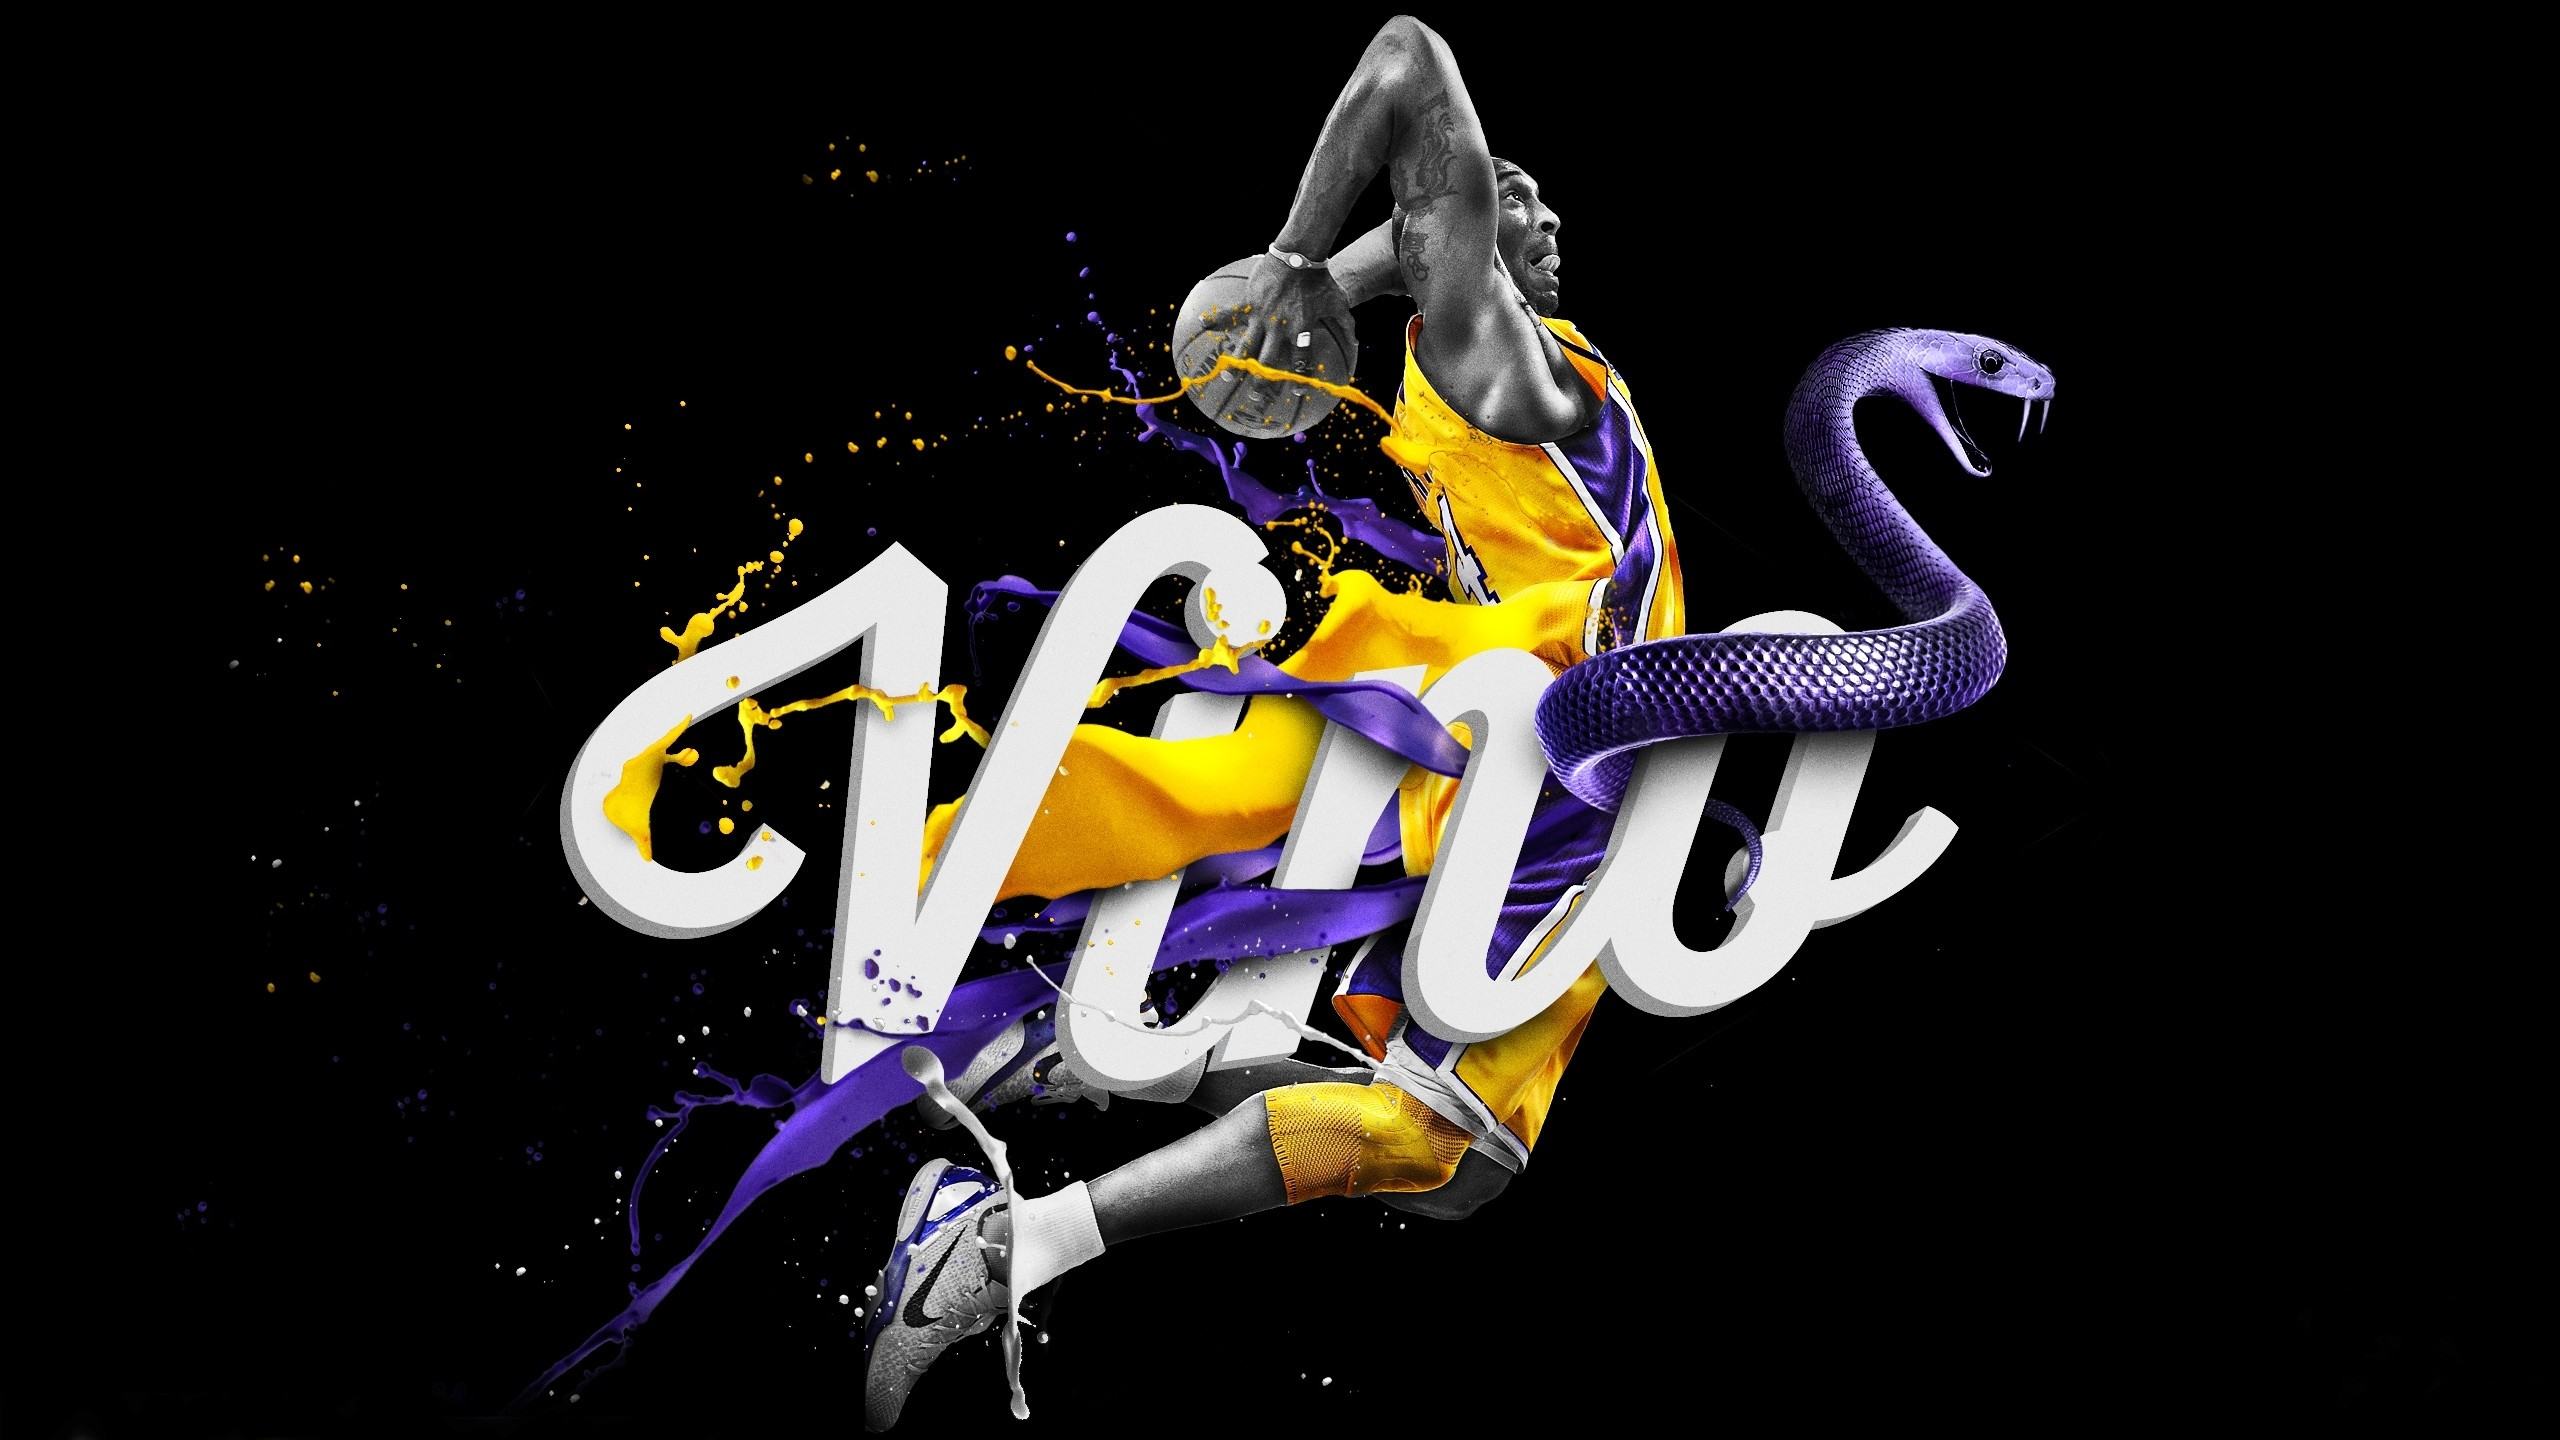 pretty nice 75491 8dc70 2560x1440 2560x1440 Wallpaper los angeles lakers, nba, kobe bryant, logo,  basketball